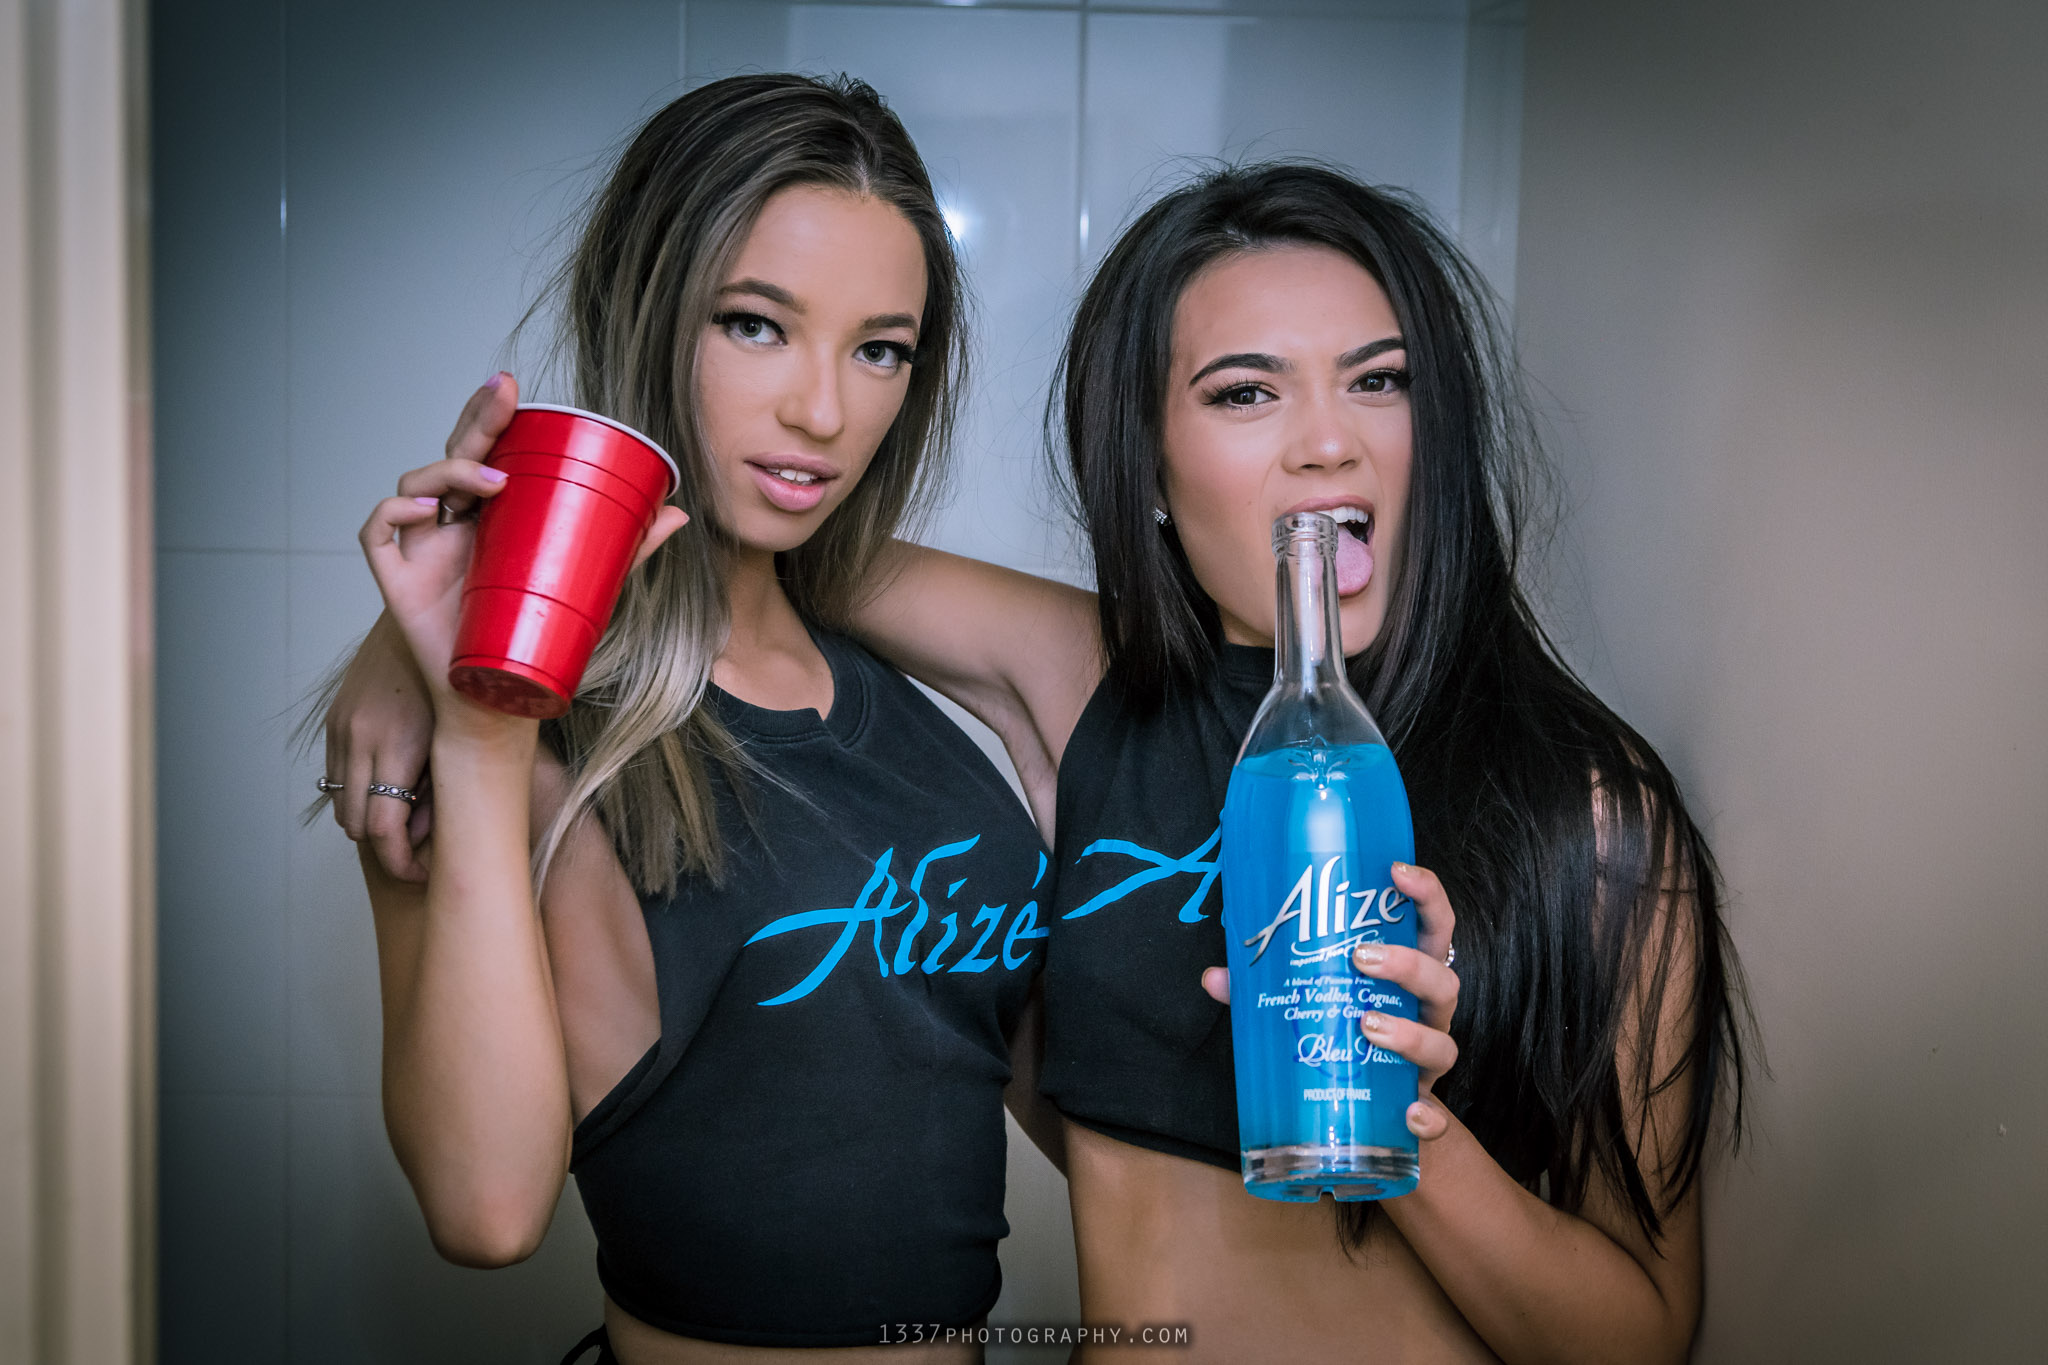 Alize promo shoot